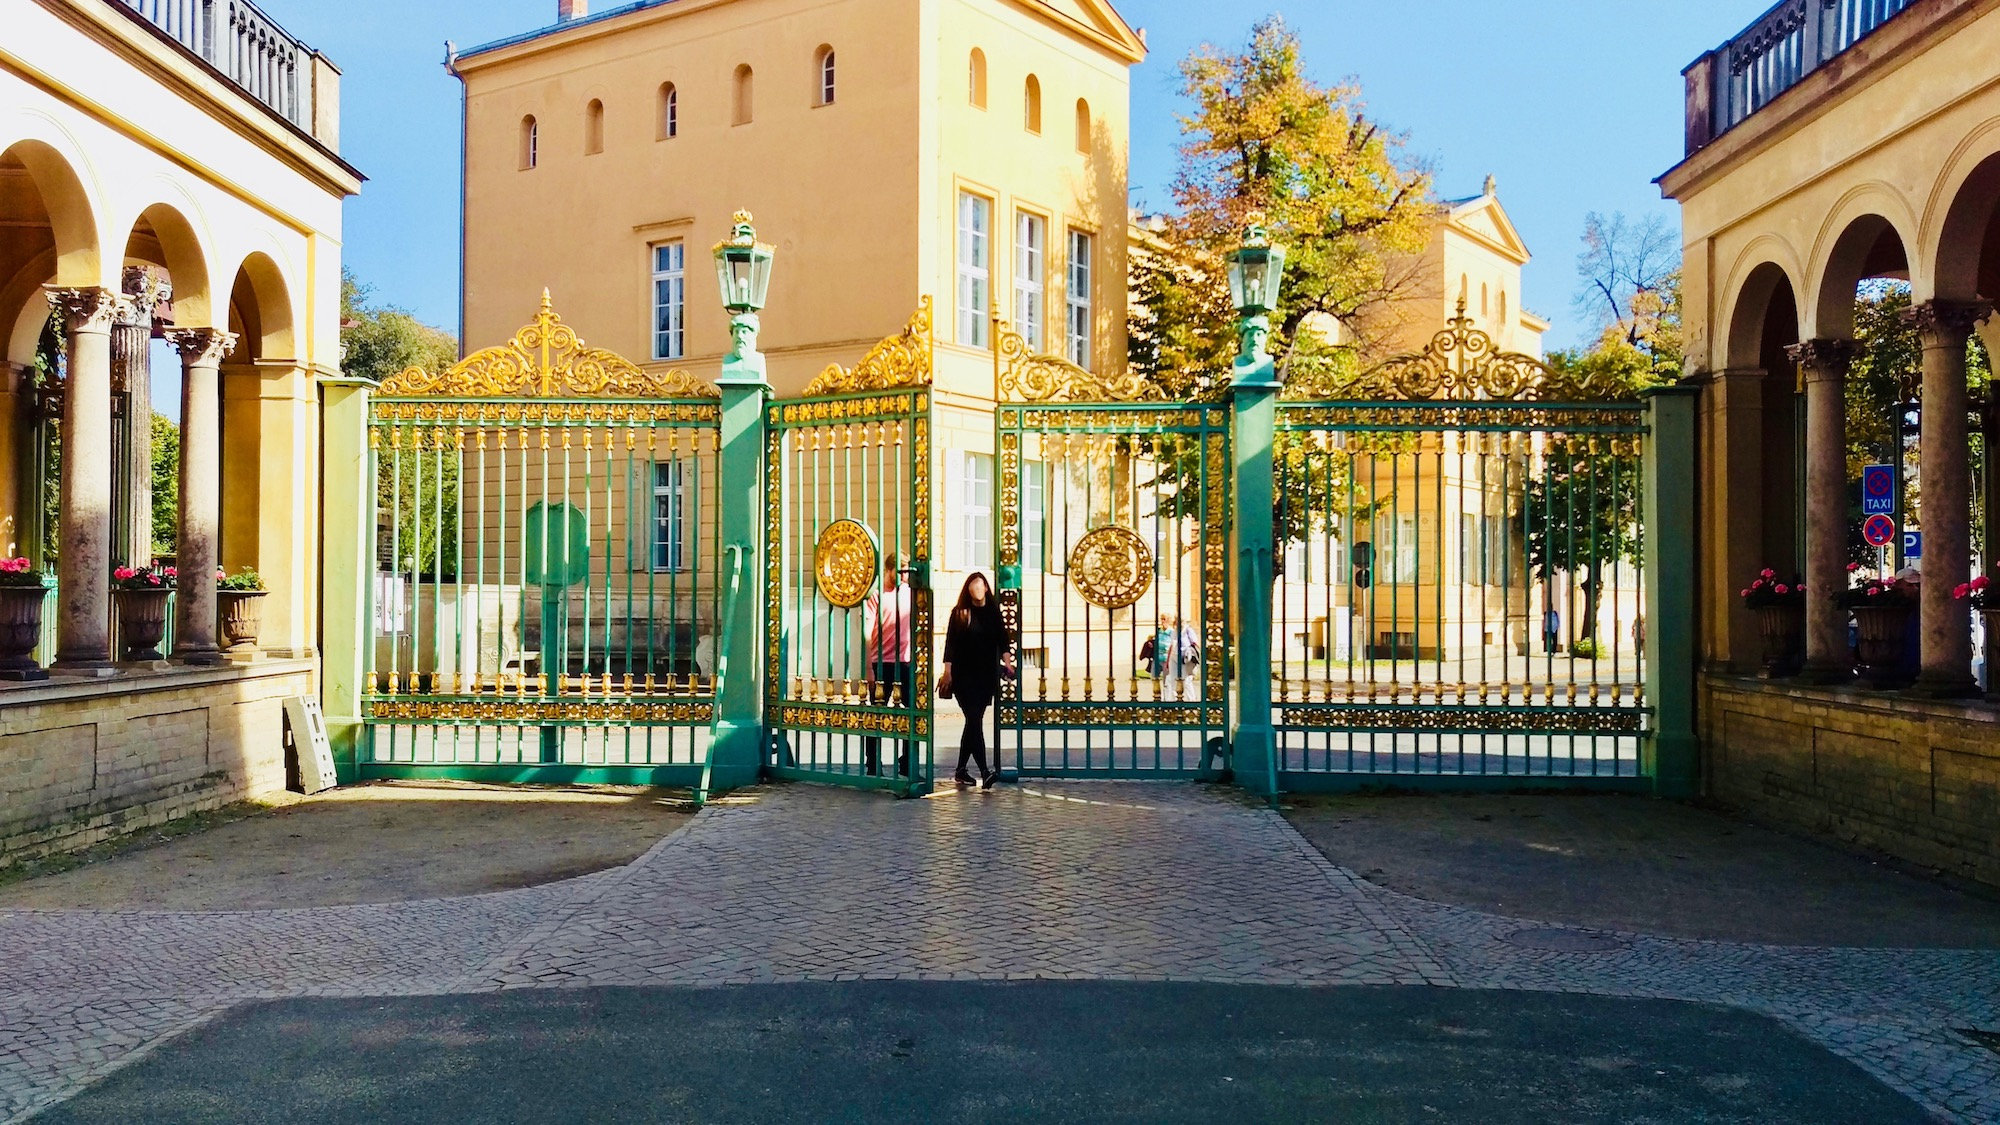 Entrance into Park Sanssouci.